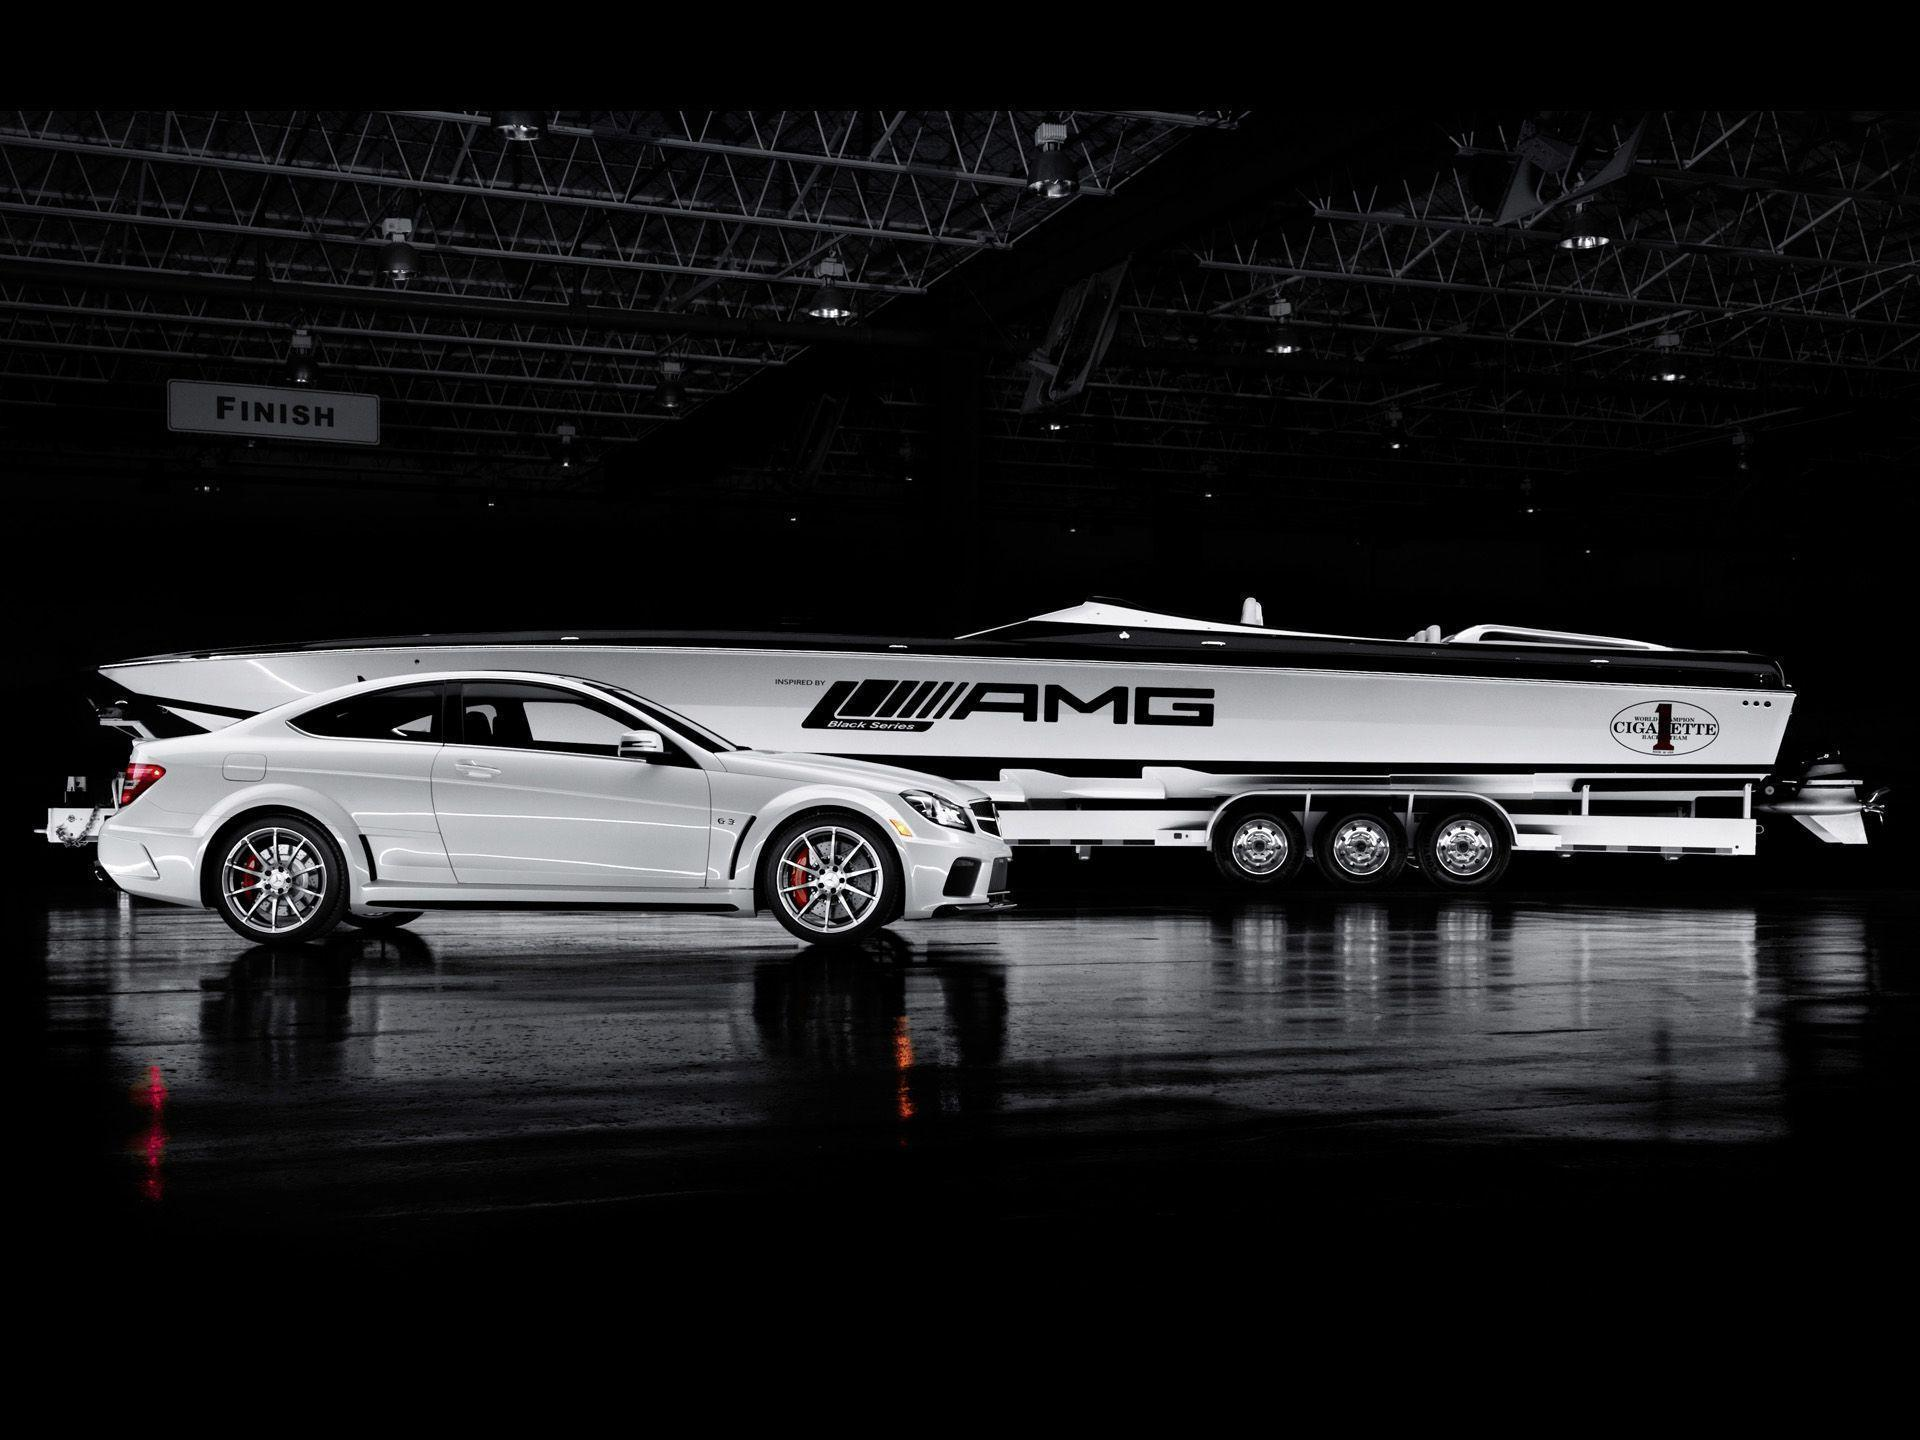 Mercedes AMG Wallpapers 1920x1440